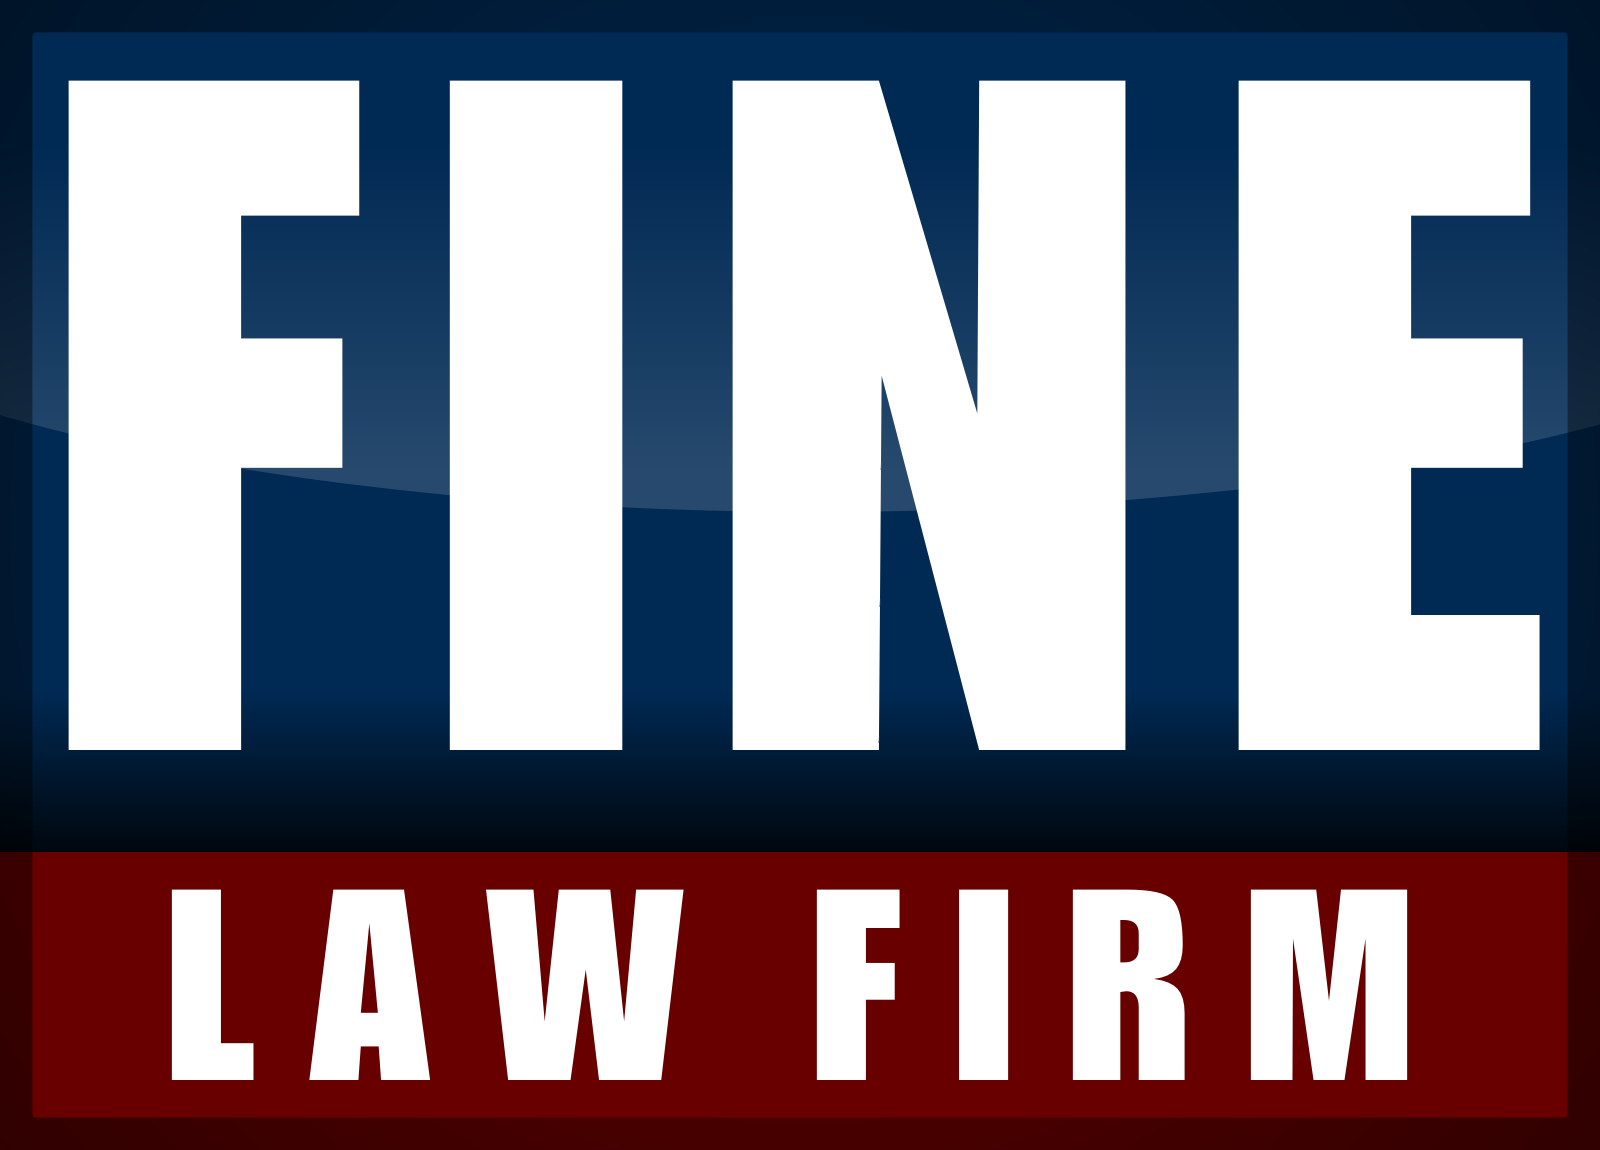 The Fine Law Firm